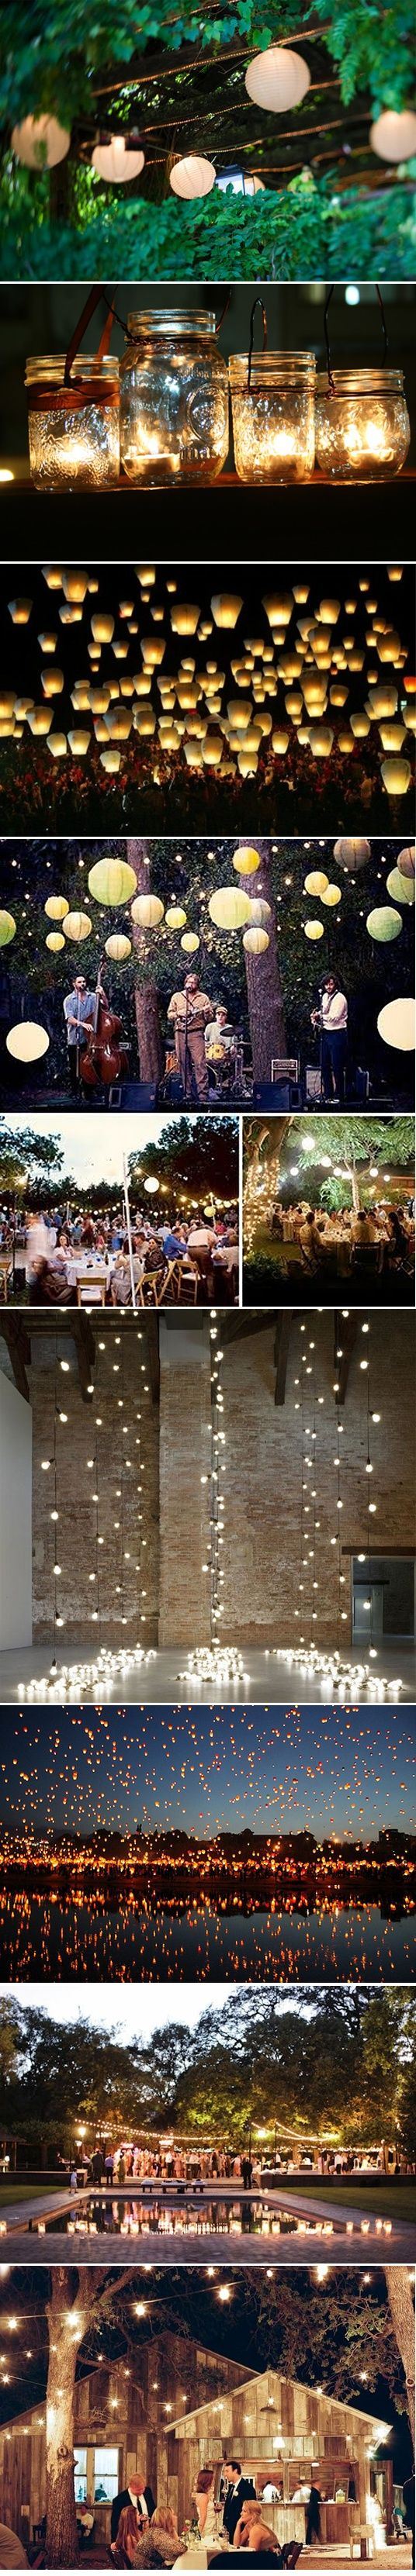 I love all of the different forms of lighting  for an outdoor evening ceremony and reception! I would love to incorporate all of them somehow. :)